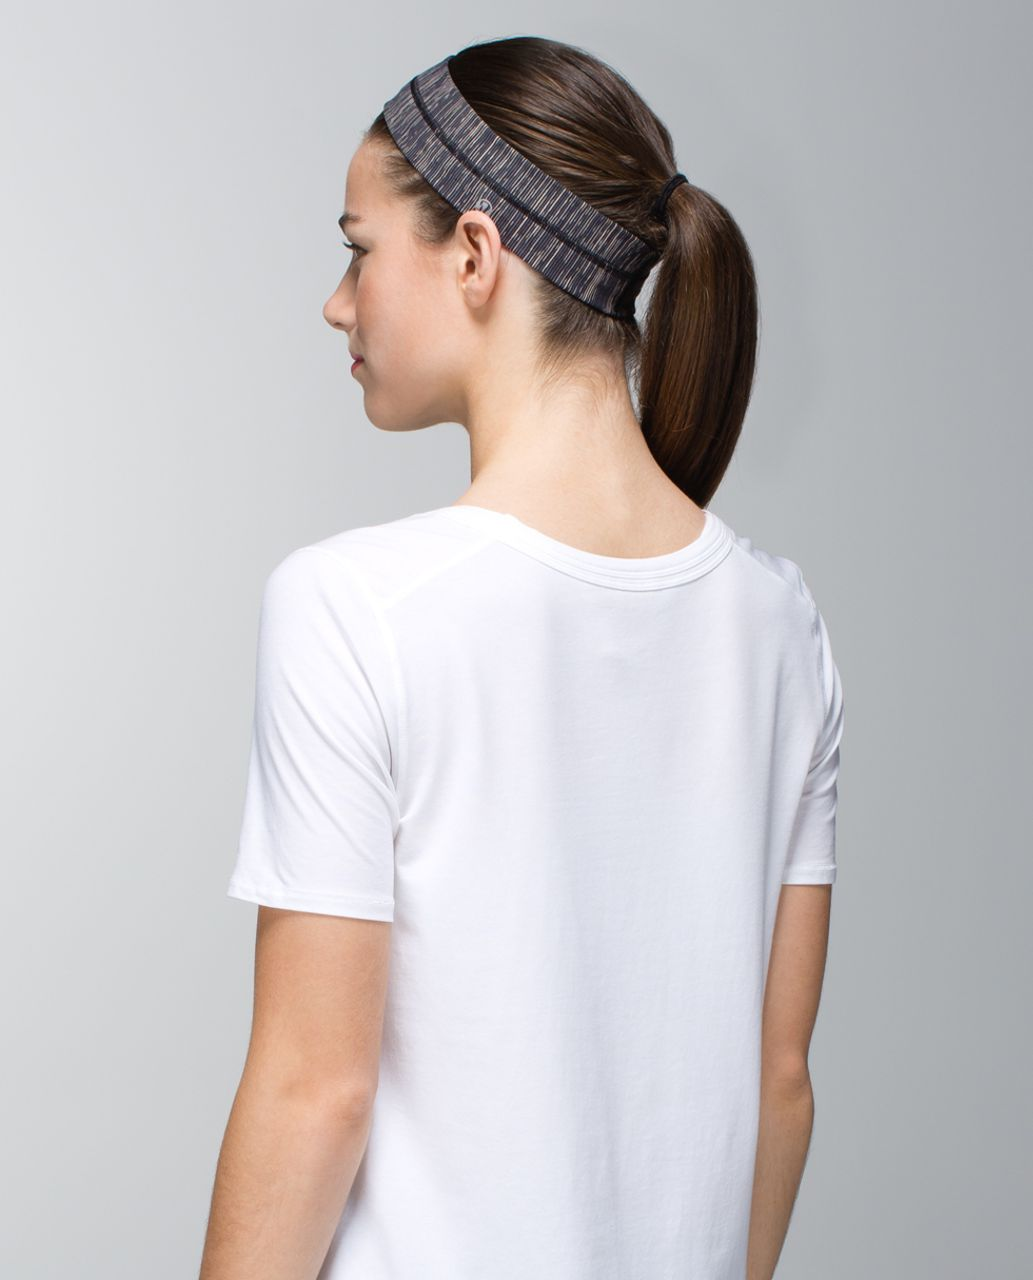 Lululemon Fly Away Tamer Headband - Wee Are From Space Black Cashew